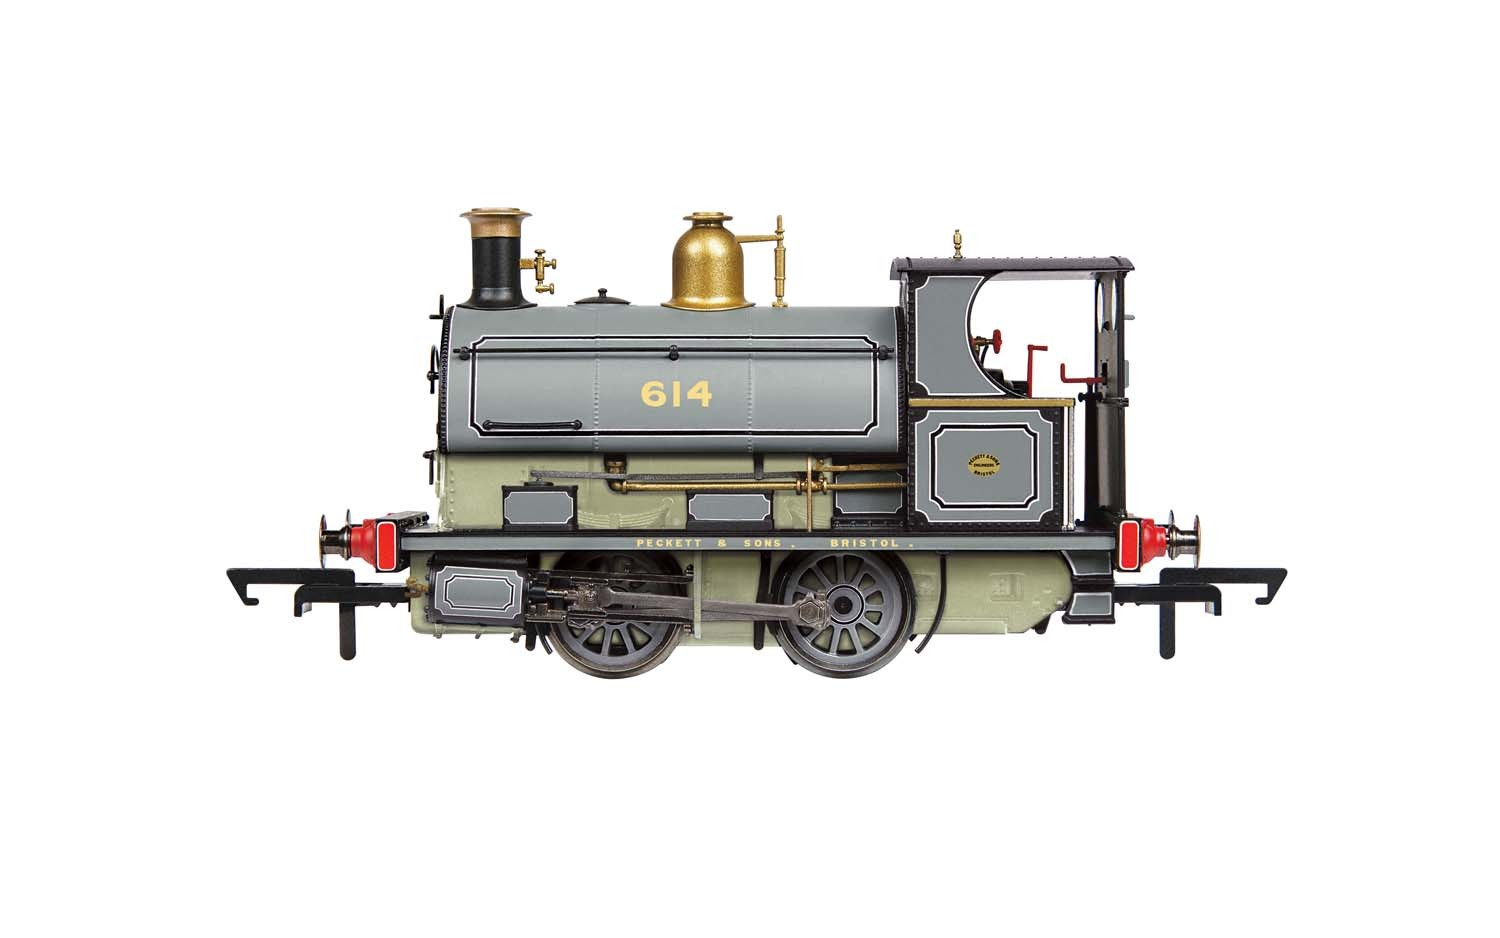 Hornby - R3825 - Peckett 614, Centenary Year Limited Edition - 2016